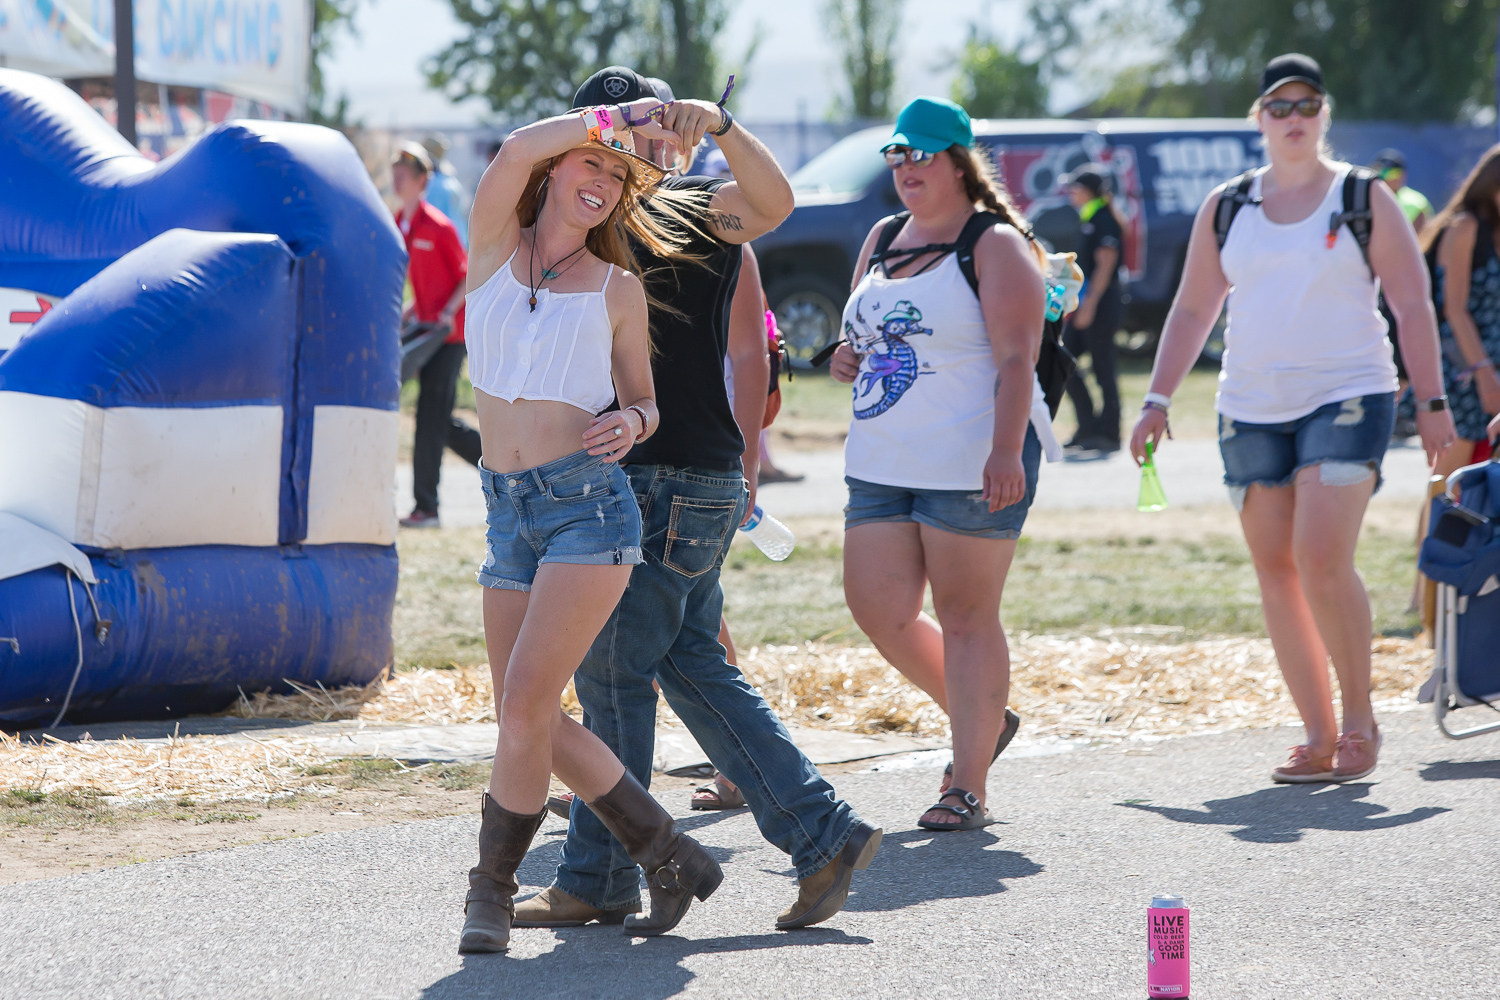 Every year, country music fans pack up their camping gear and make the trek out to George, WA for the annual Watershed Music Festival. The three-day festival includes a giant ferris wheel, line dancing, waterslide, a foam party, and of course - music! Headliners include Miranda Lambert, Zac Brown Band and Jason Aldean - and the festival is completely sold out. (Image: David Conger / davidconger.com / Seattle Refined)